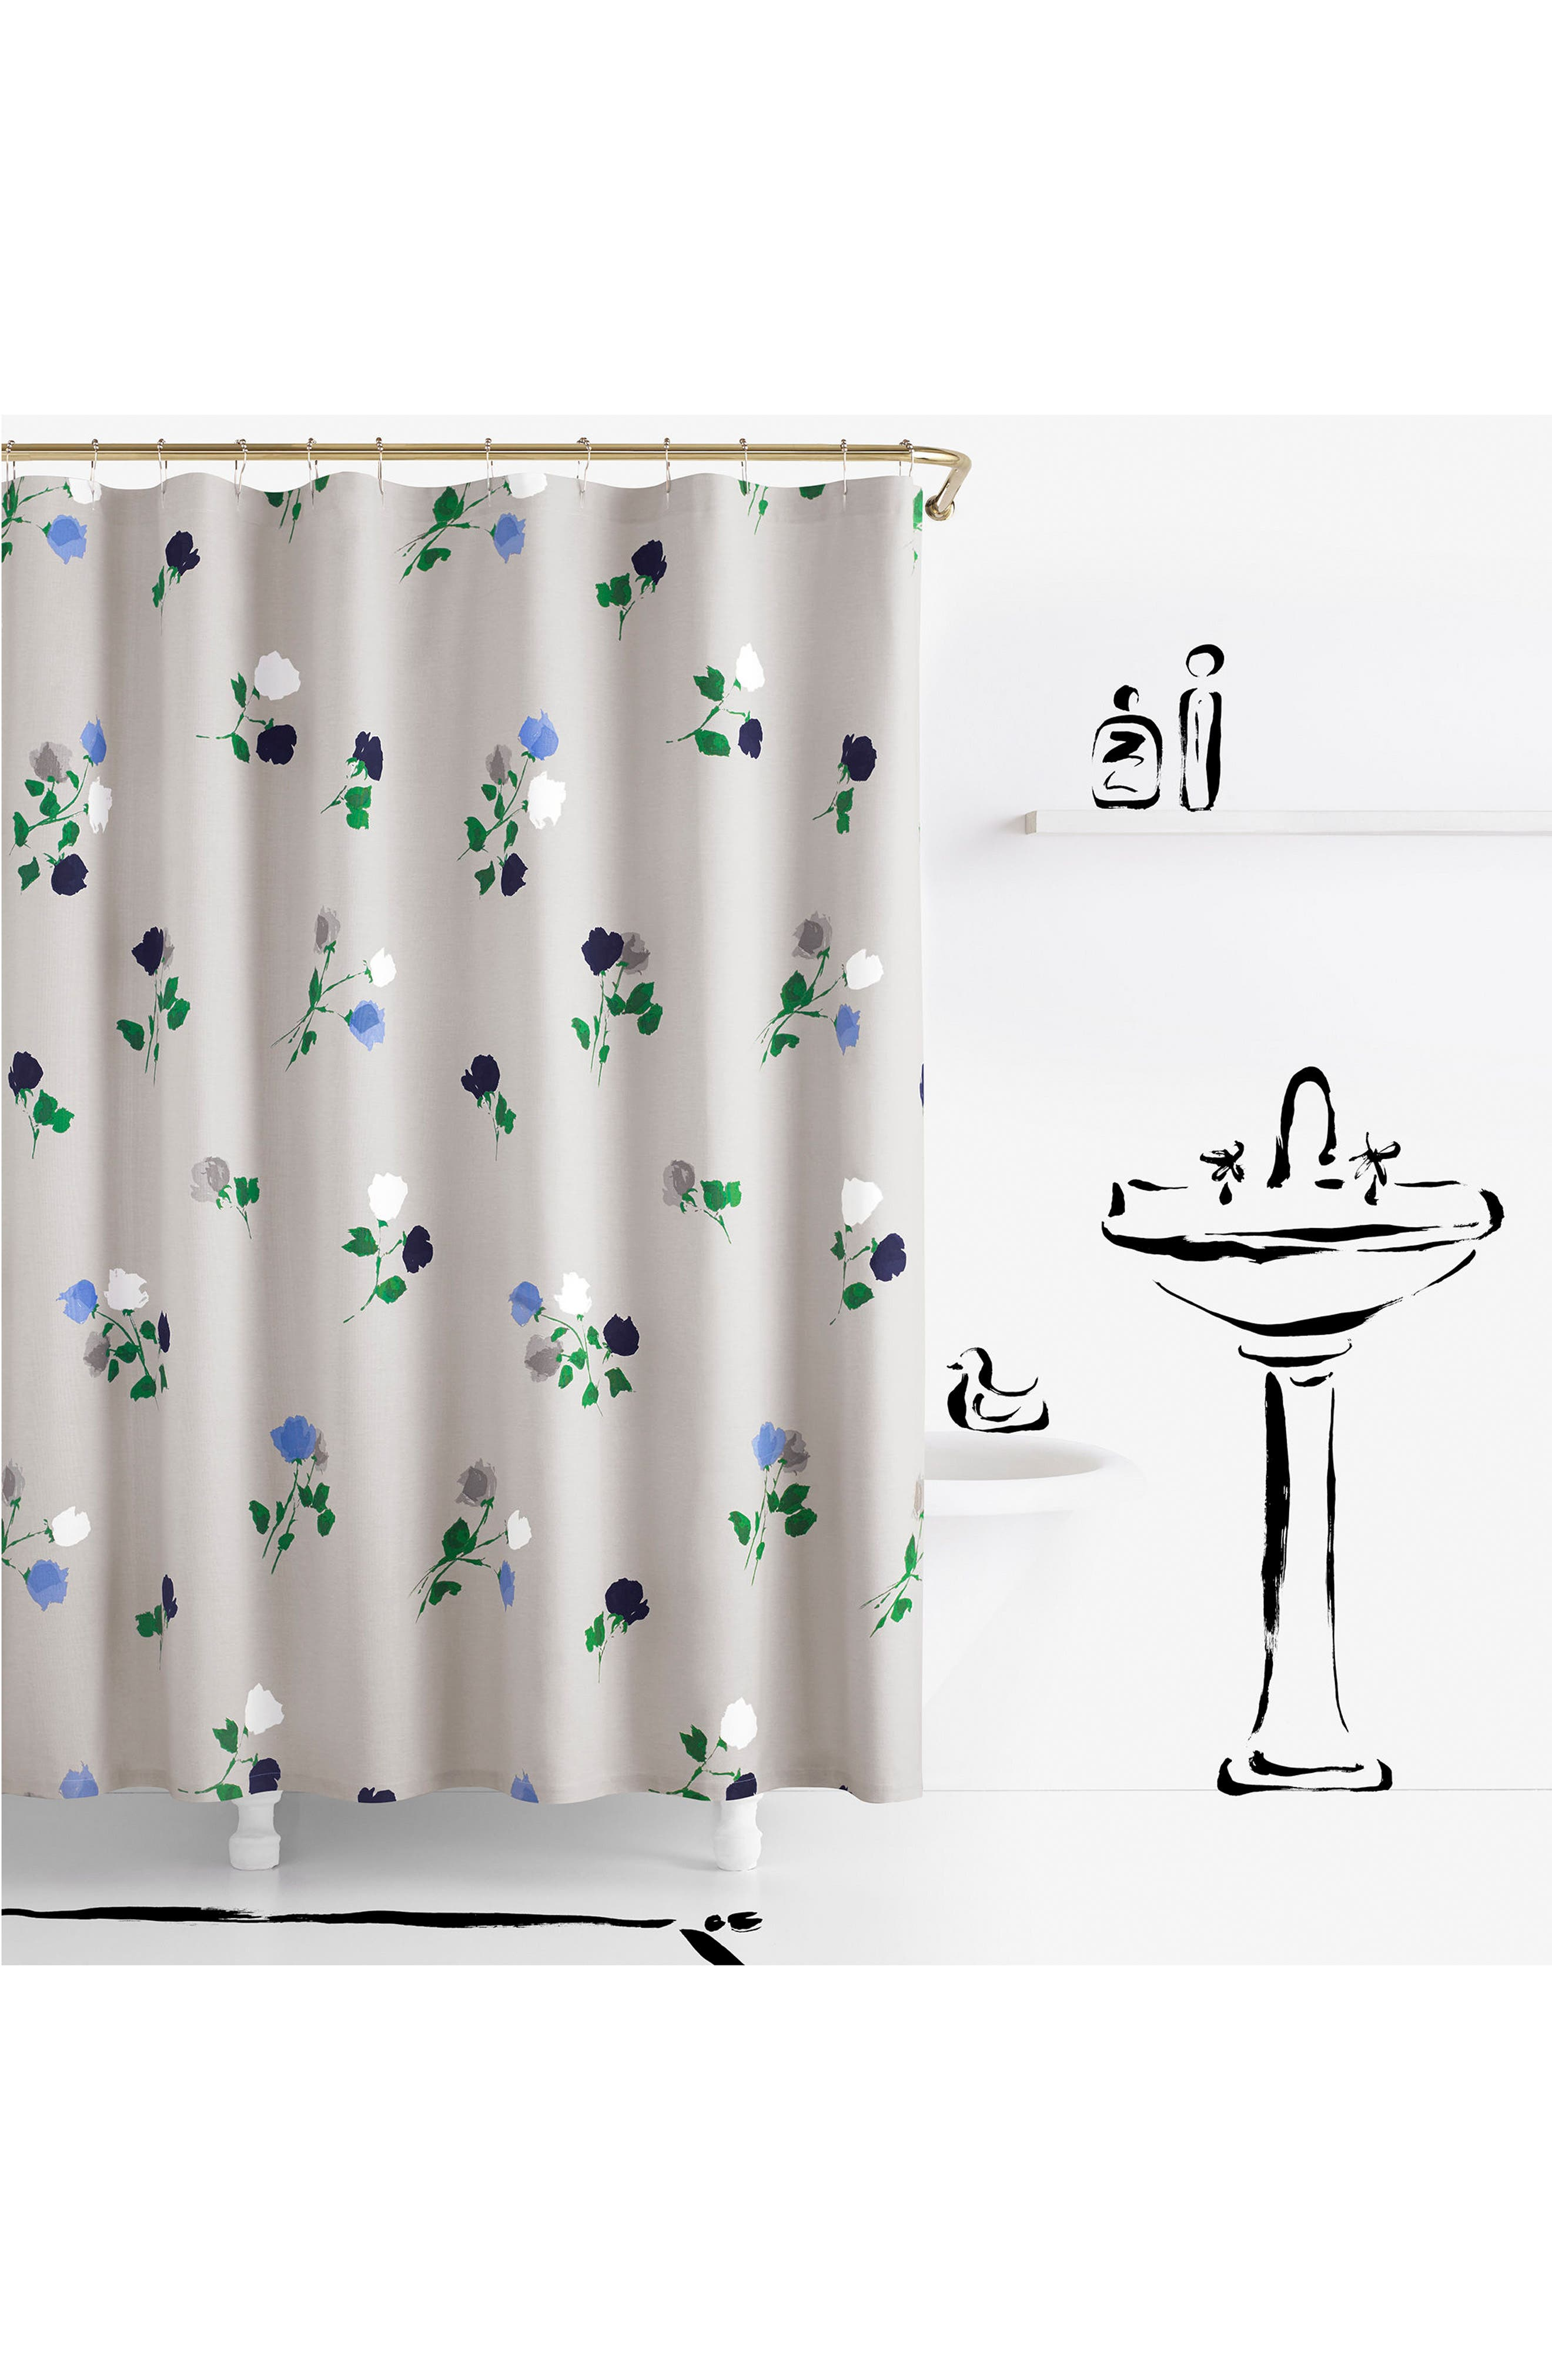 willow court shower curtain,                             Main thumbnail 1, color,                             020